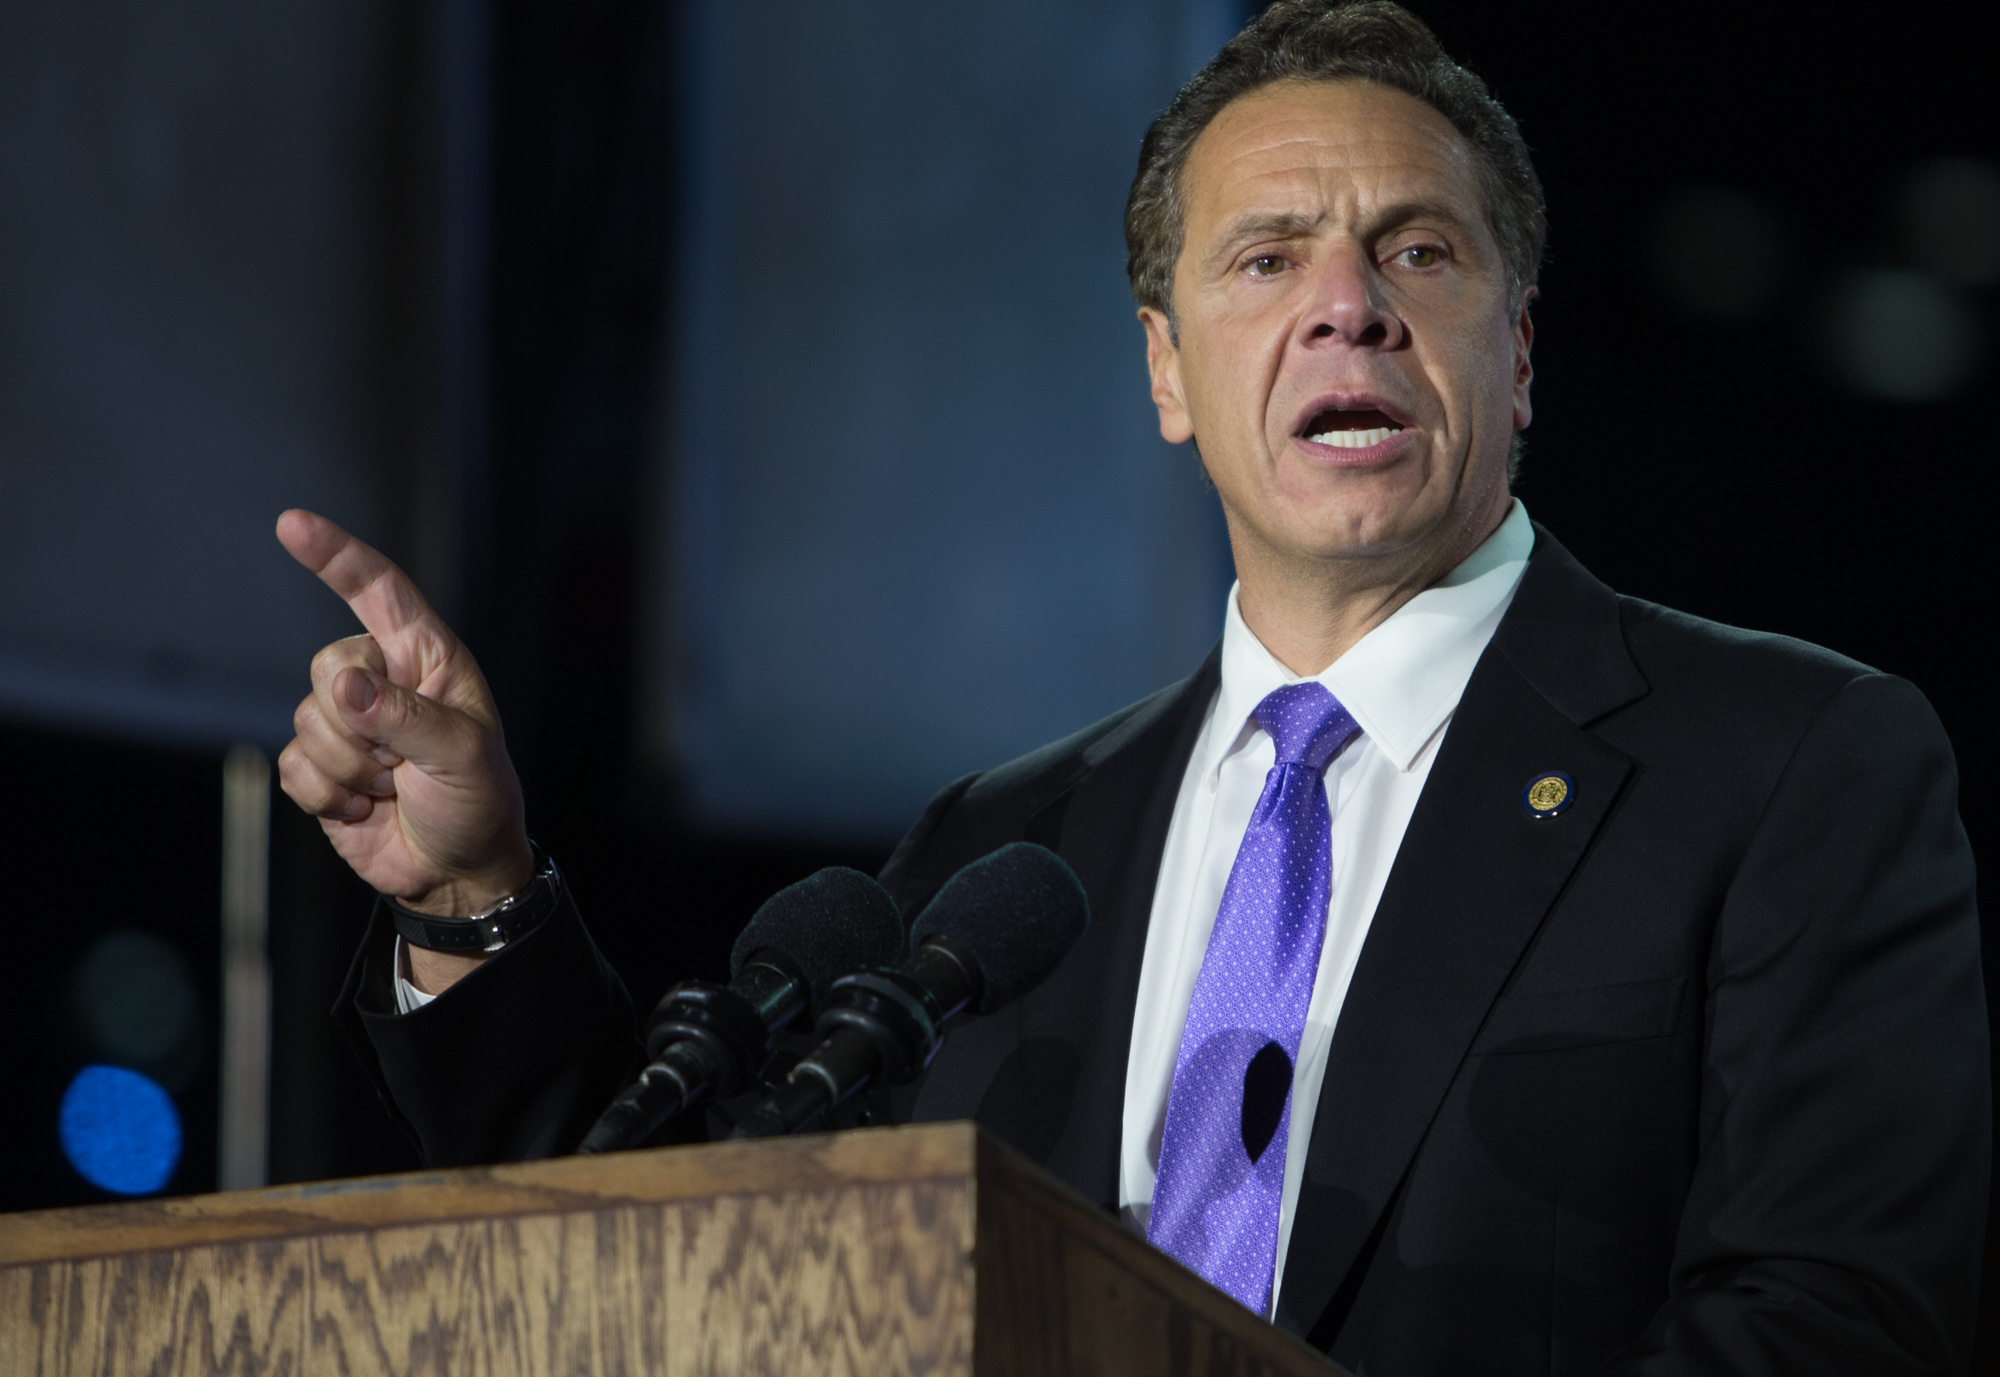 """New York Governor Andrew Cuomo addresses the audience outside the Jacob K. Javits center, Nov. 8, 2016. Cuomo,who spoke after New York Mayor Bill de Blasio, was optimistic about a Clinton victory. """"This is going to be a great night when it's over. I believe that,"""" he said."""